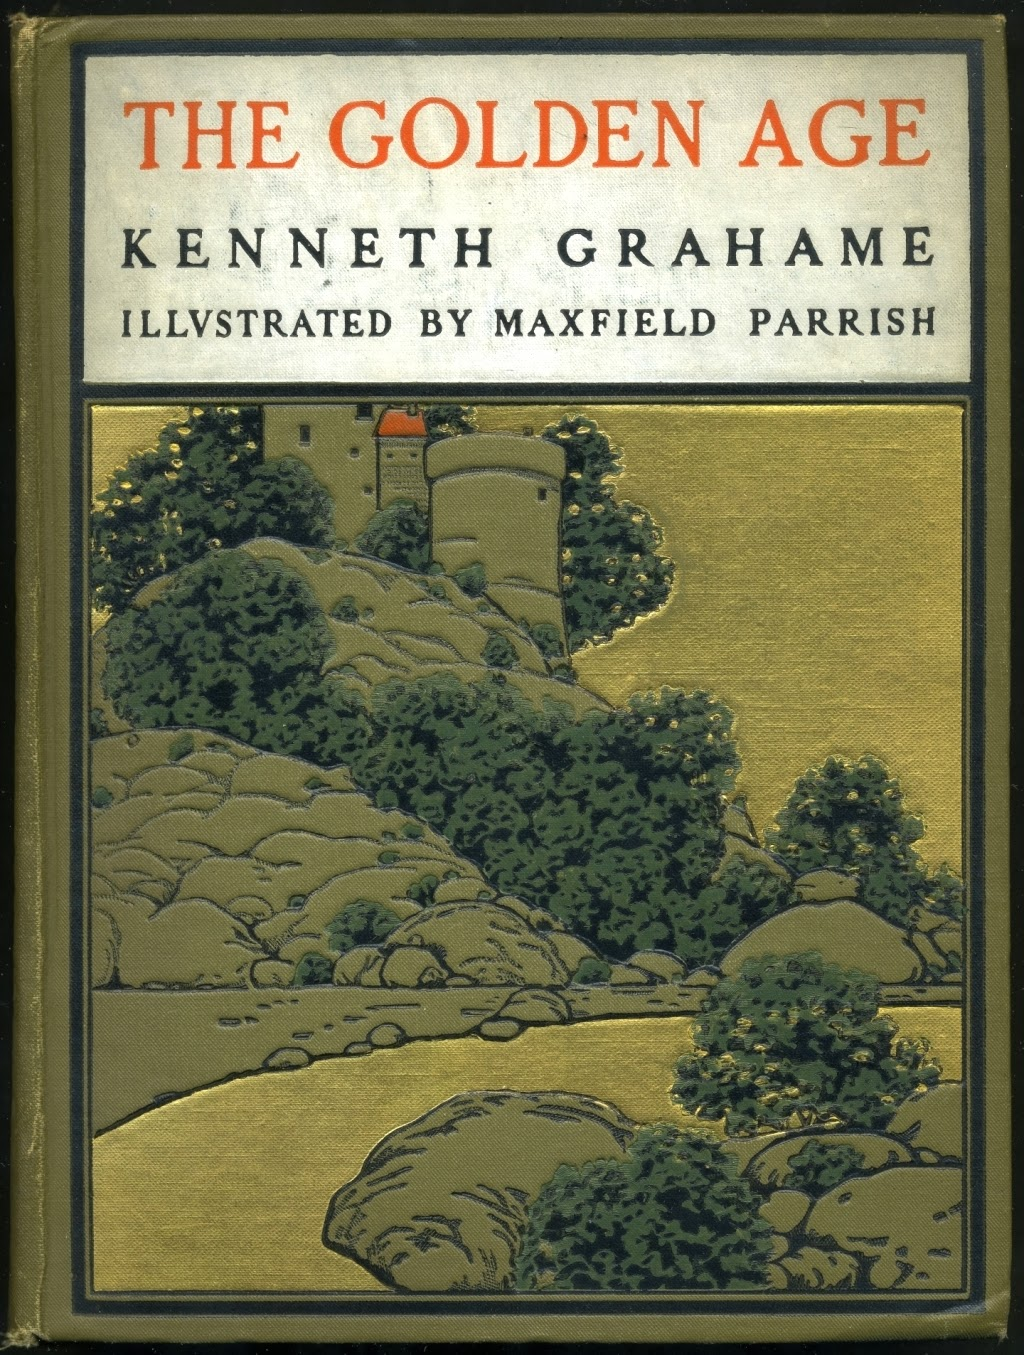 The Golden Age: MAXFIELD PARRISH ~ The Golden Age by Kenneth Grahame ...